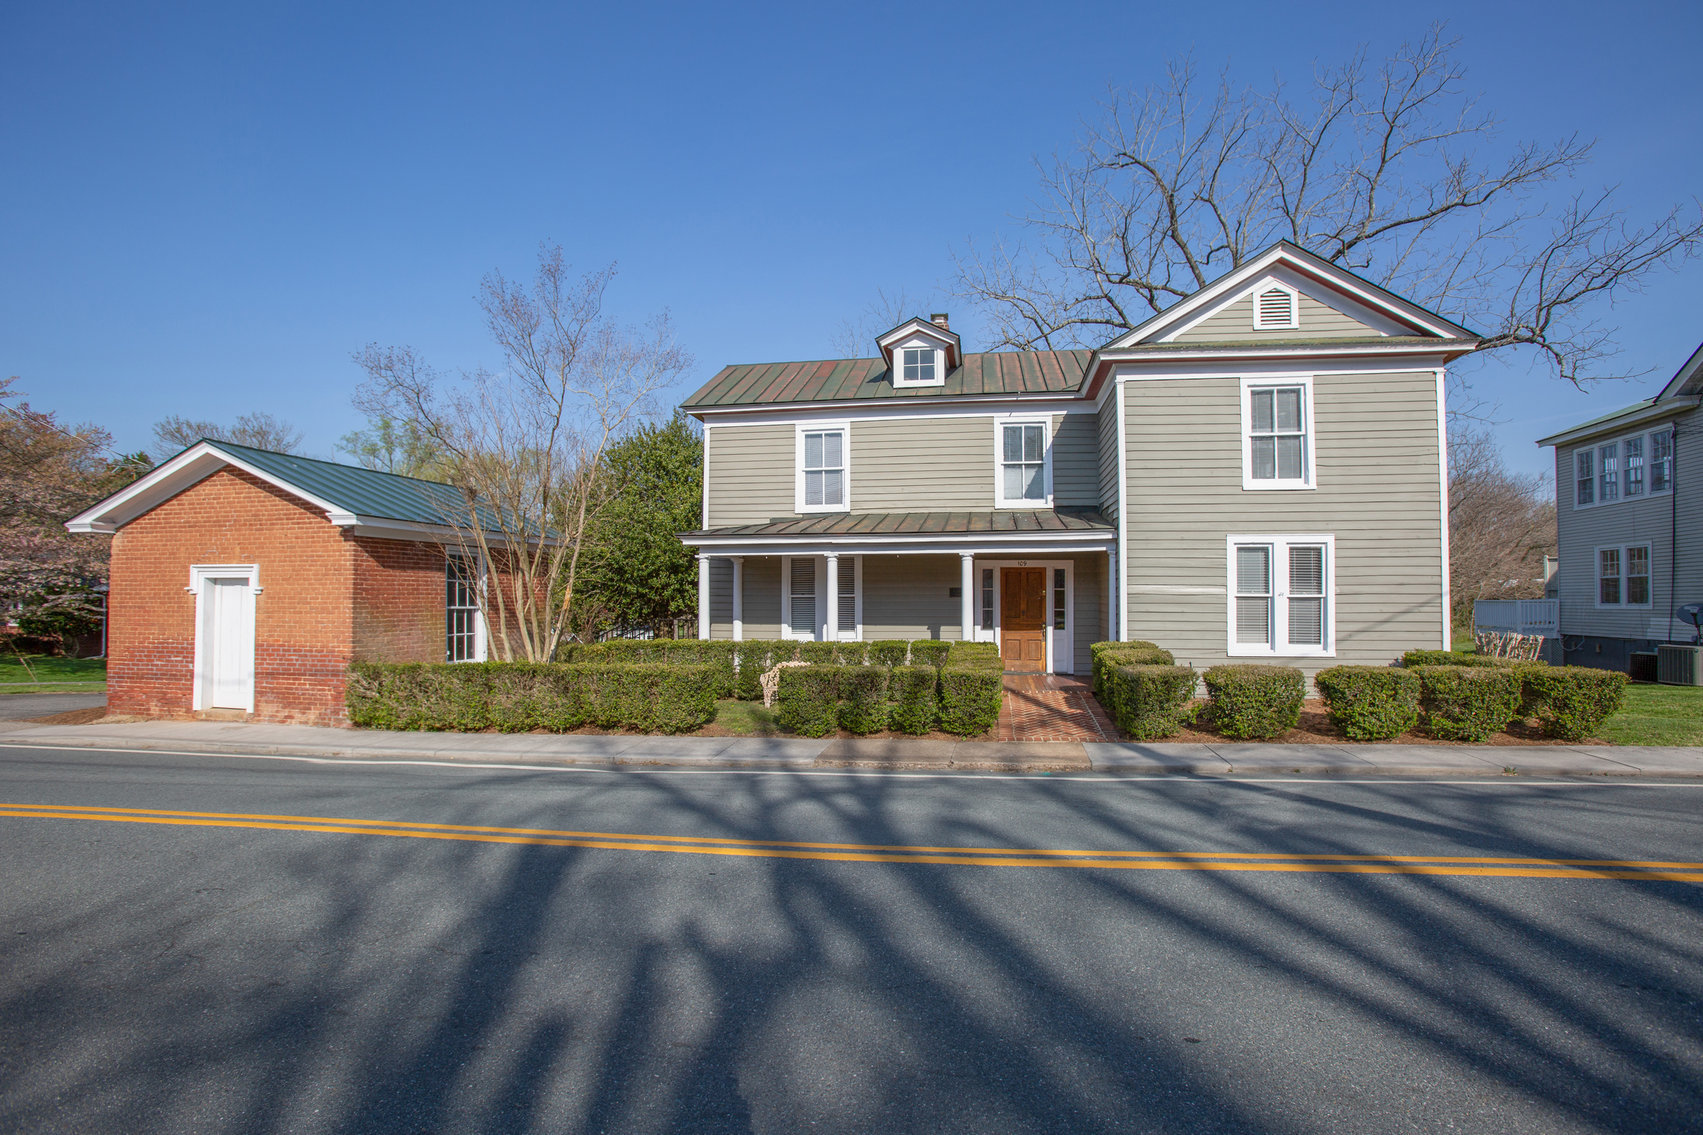 Image for 9 Room/2 Half Bath Home/Office Building (Circa 1905) on .50± Acres in Downtown Louisa, VA